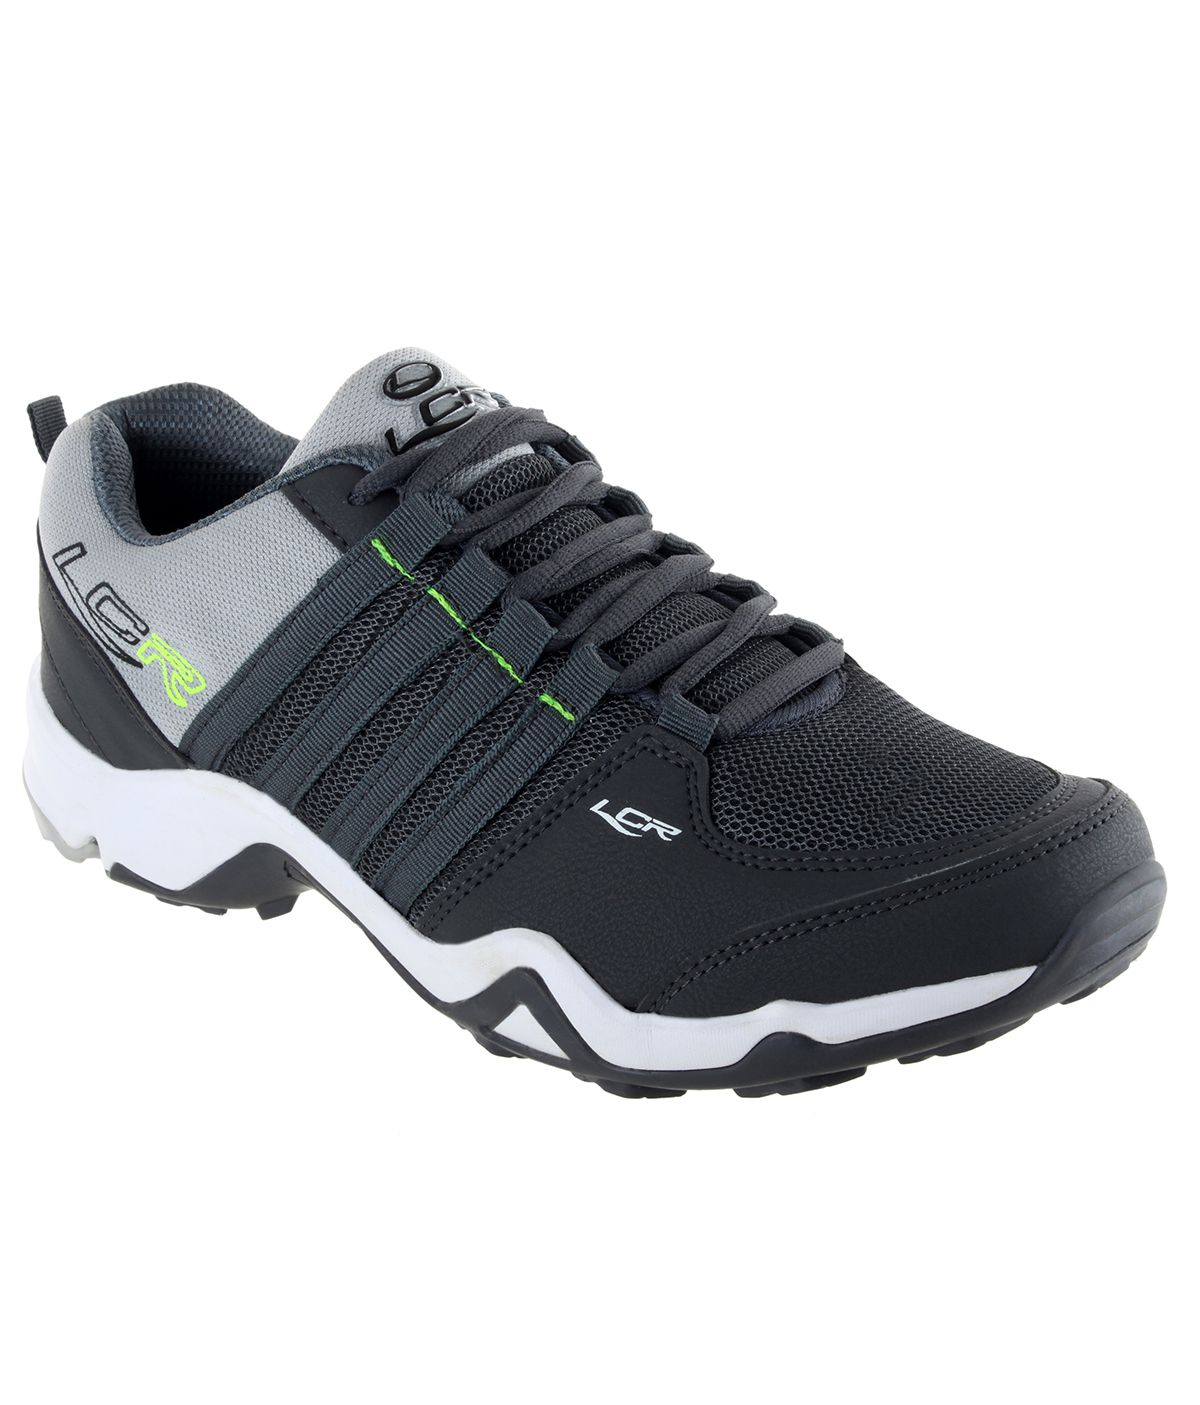 Lancer Gray Running Shoes buy cheap 100% guaranteed clearance pre order sale perfect online cheap online low shipping fee for sale joKfq